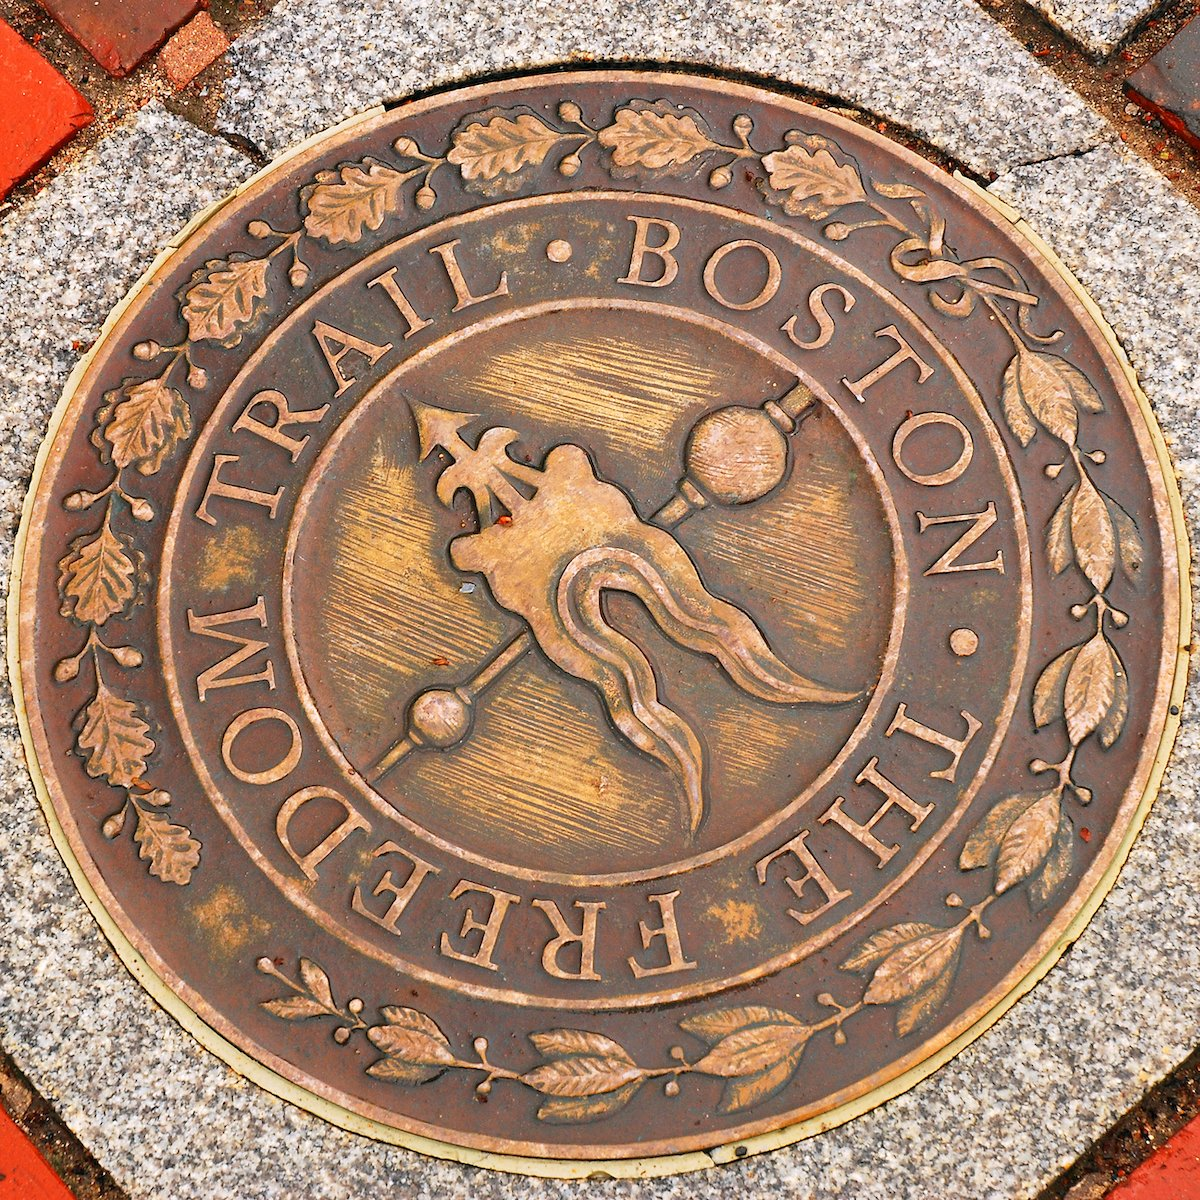 Boston Freedom Trail Marker.